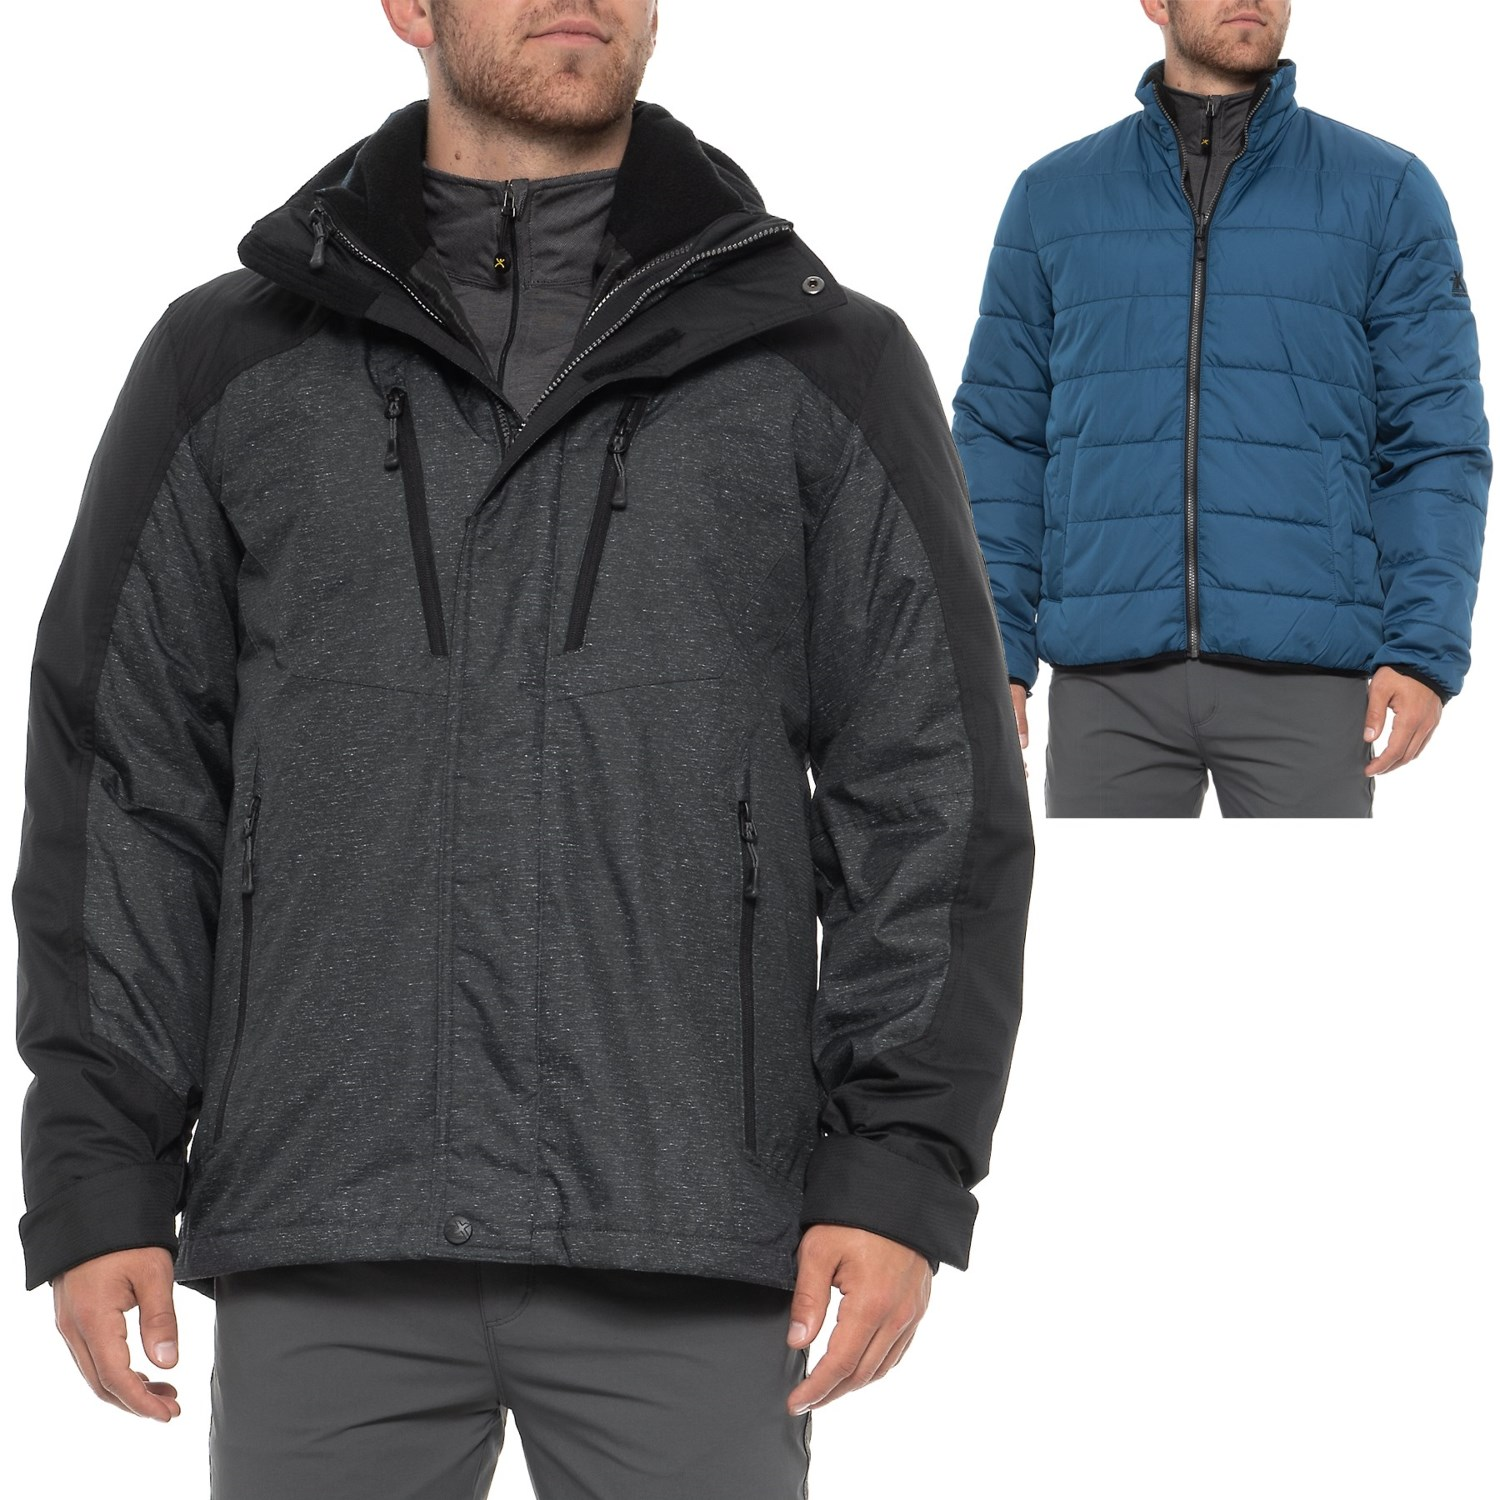 dd4b9df60 ZeroXposur Cobra Systems Jacket - Insulated, 3-in-1 (For Men)